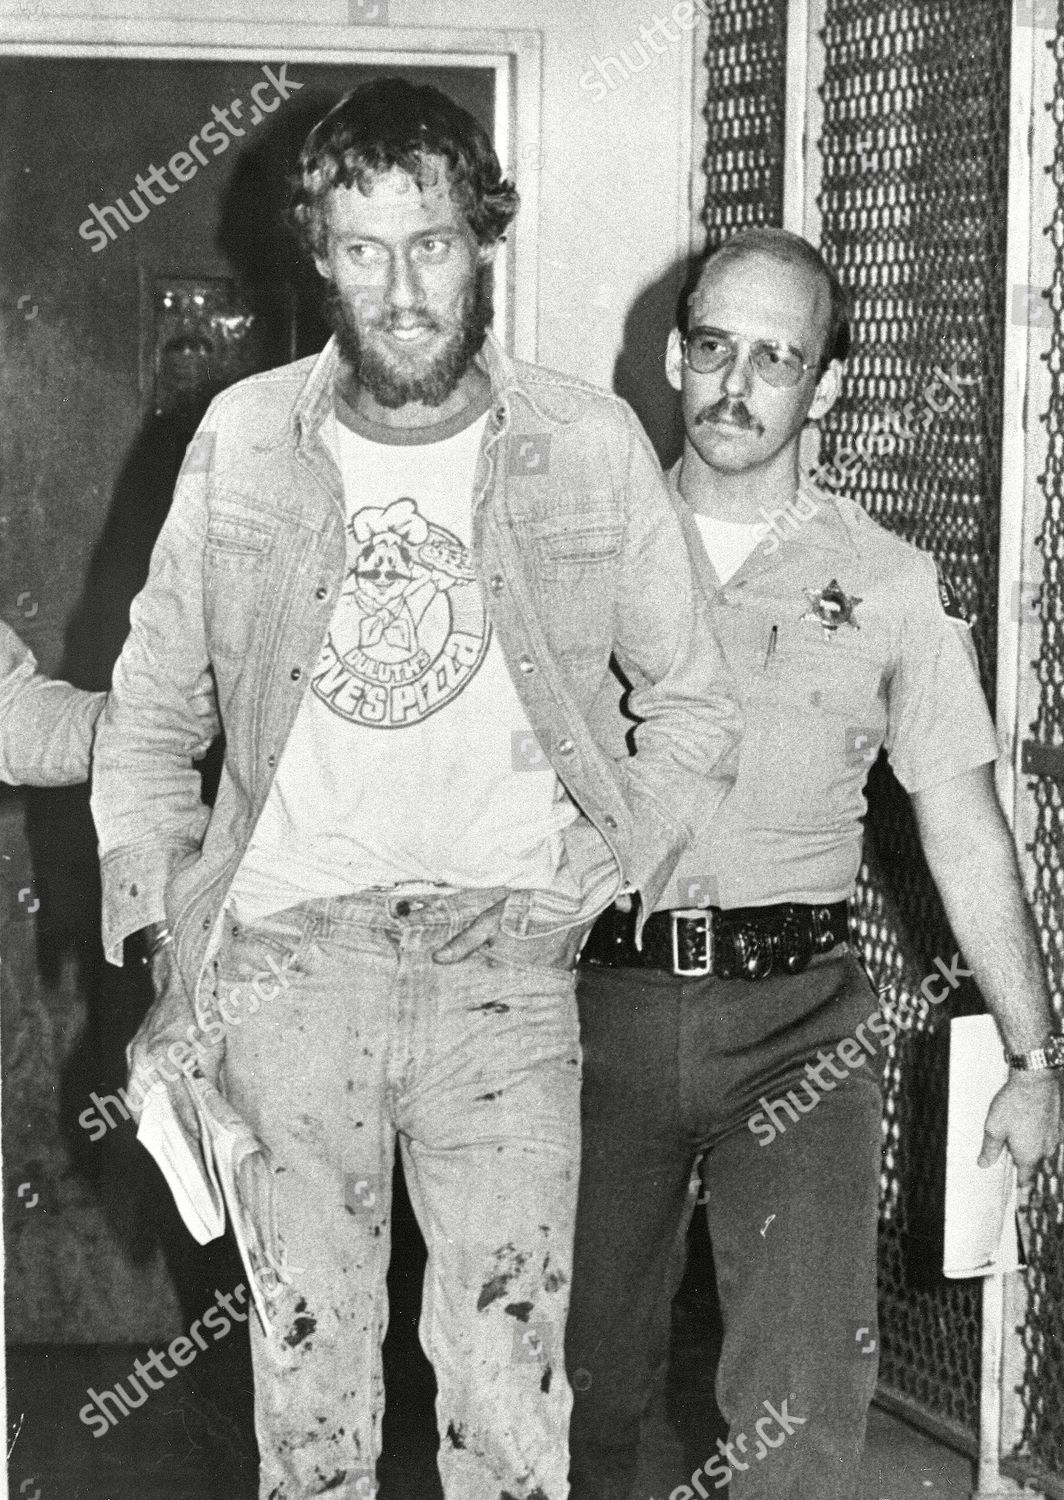 JOHN HOLMES APPEARS IN COURT, LOS ANGELES, USA Stock Image by Wally Fong  for editorial use, Dec 9, 1981